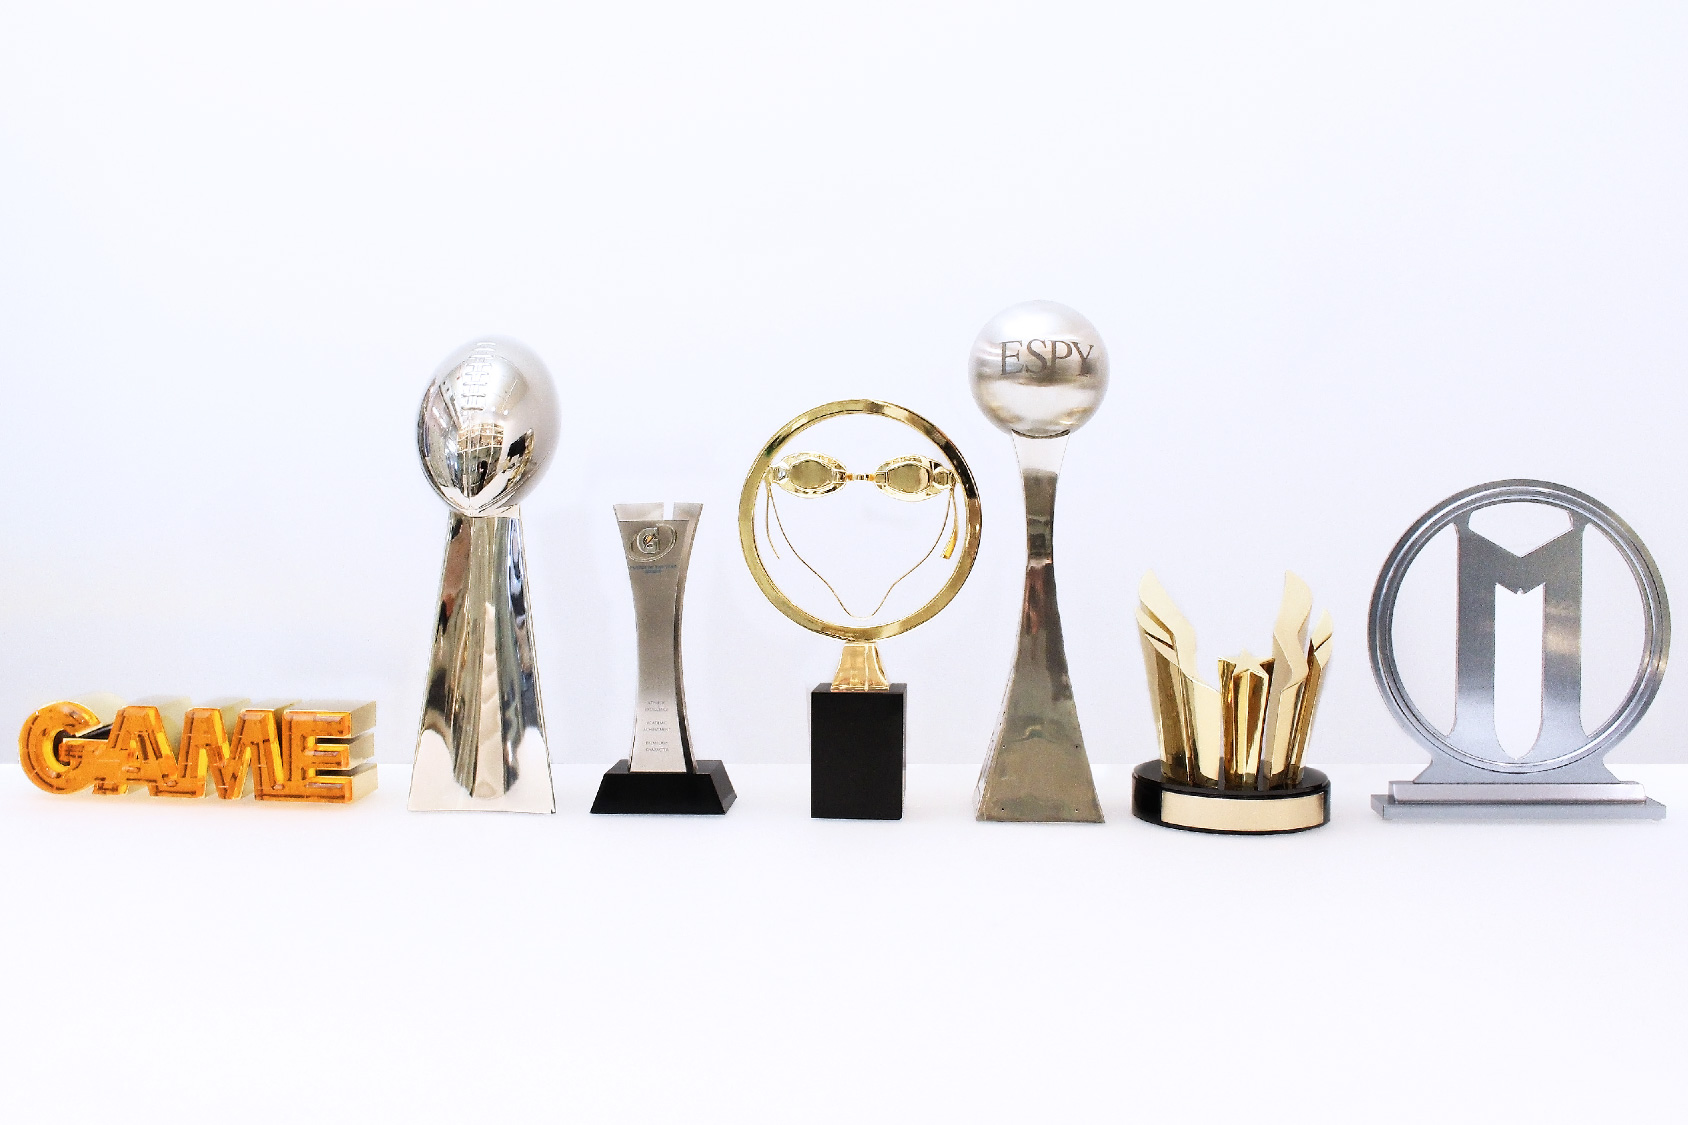 Six custom sports trophies by Society Awards grouped in a line on a white table